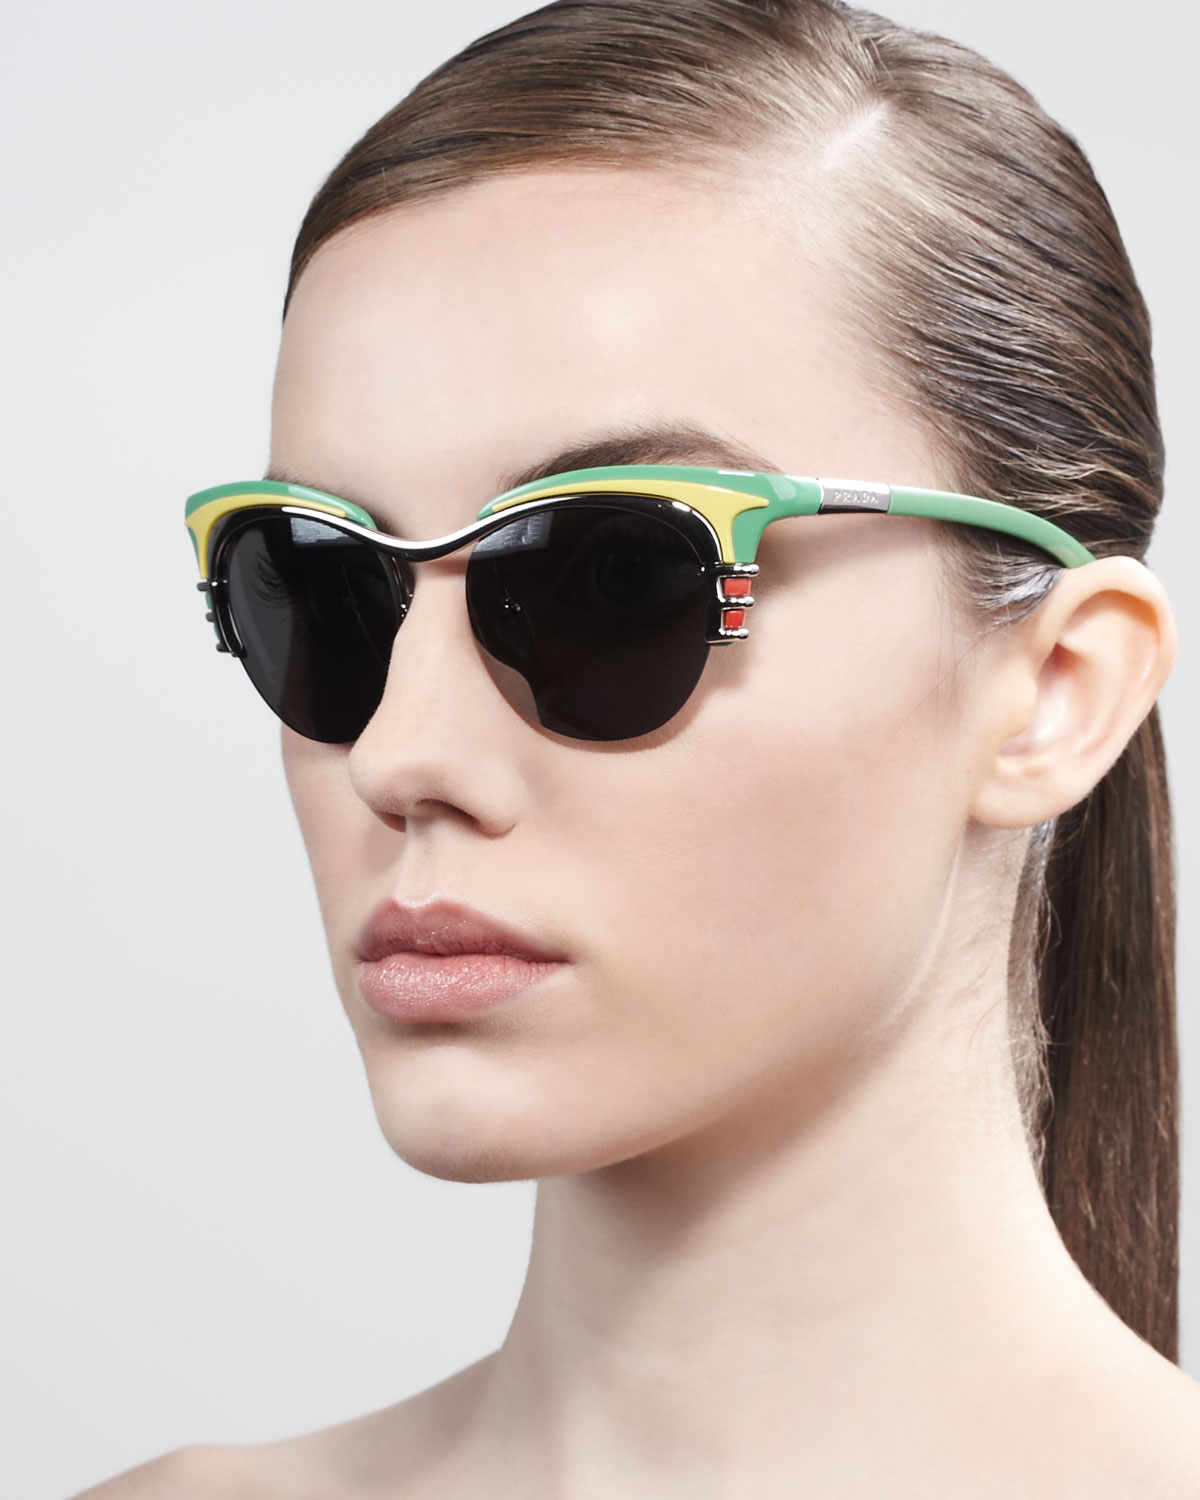 047cd6614a419 Prada Dixie Car Deluxe Club Master Sunglasses in Yellow - Lyst